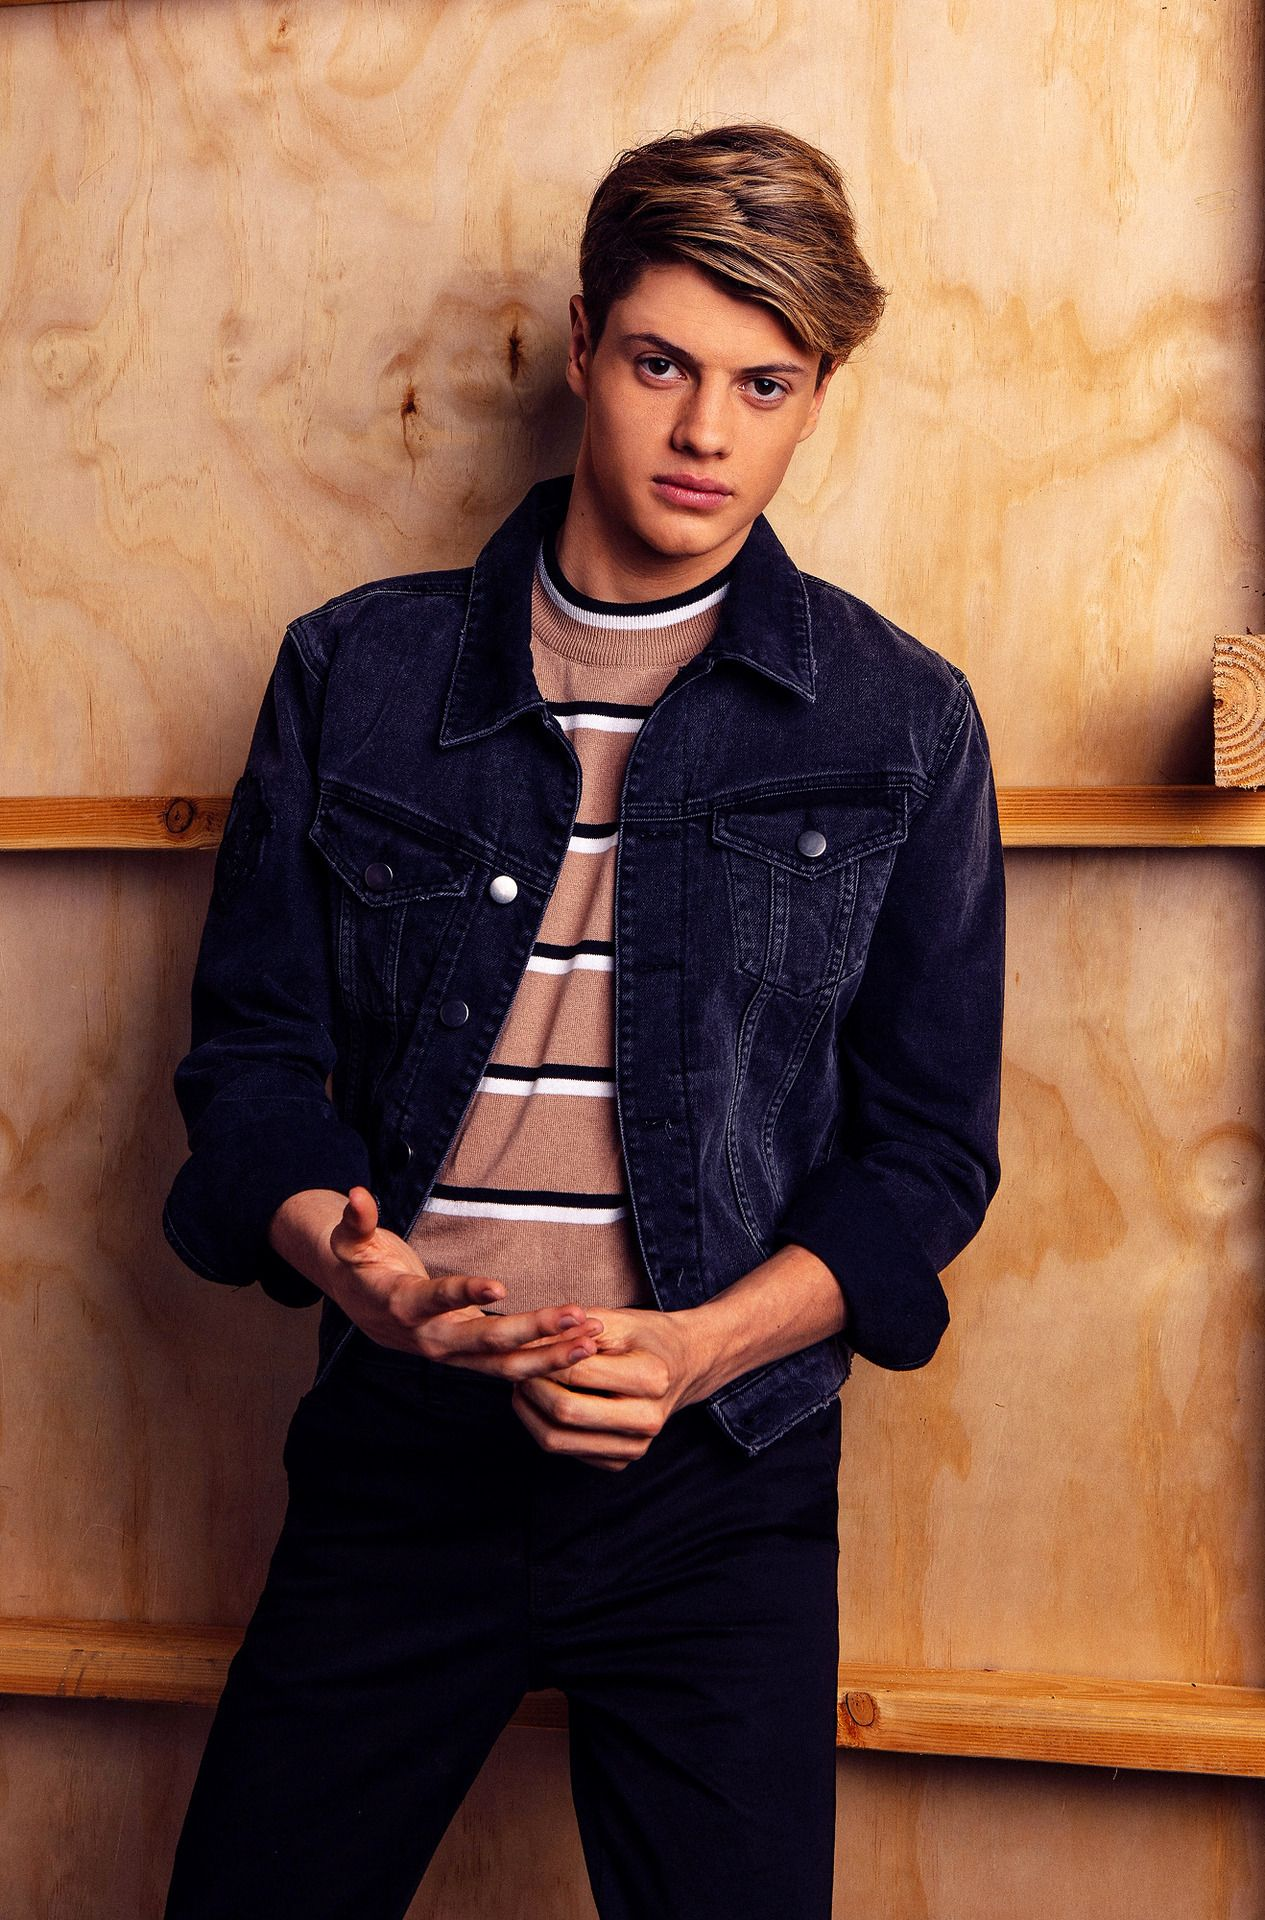 jace norman photographed by